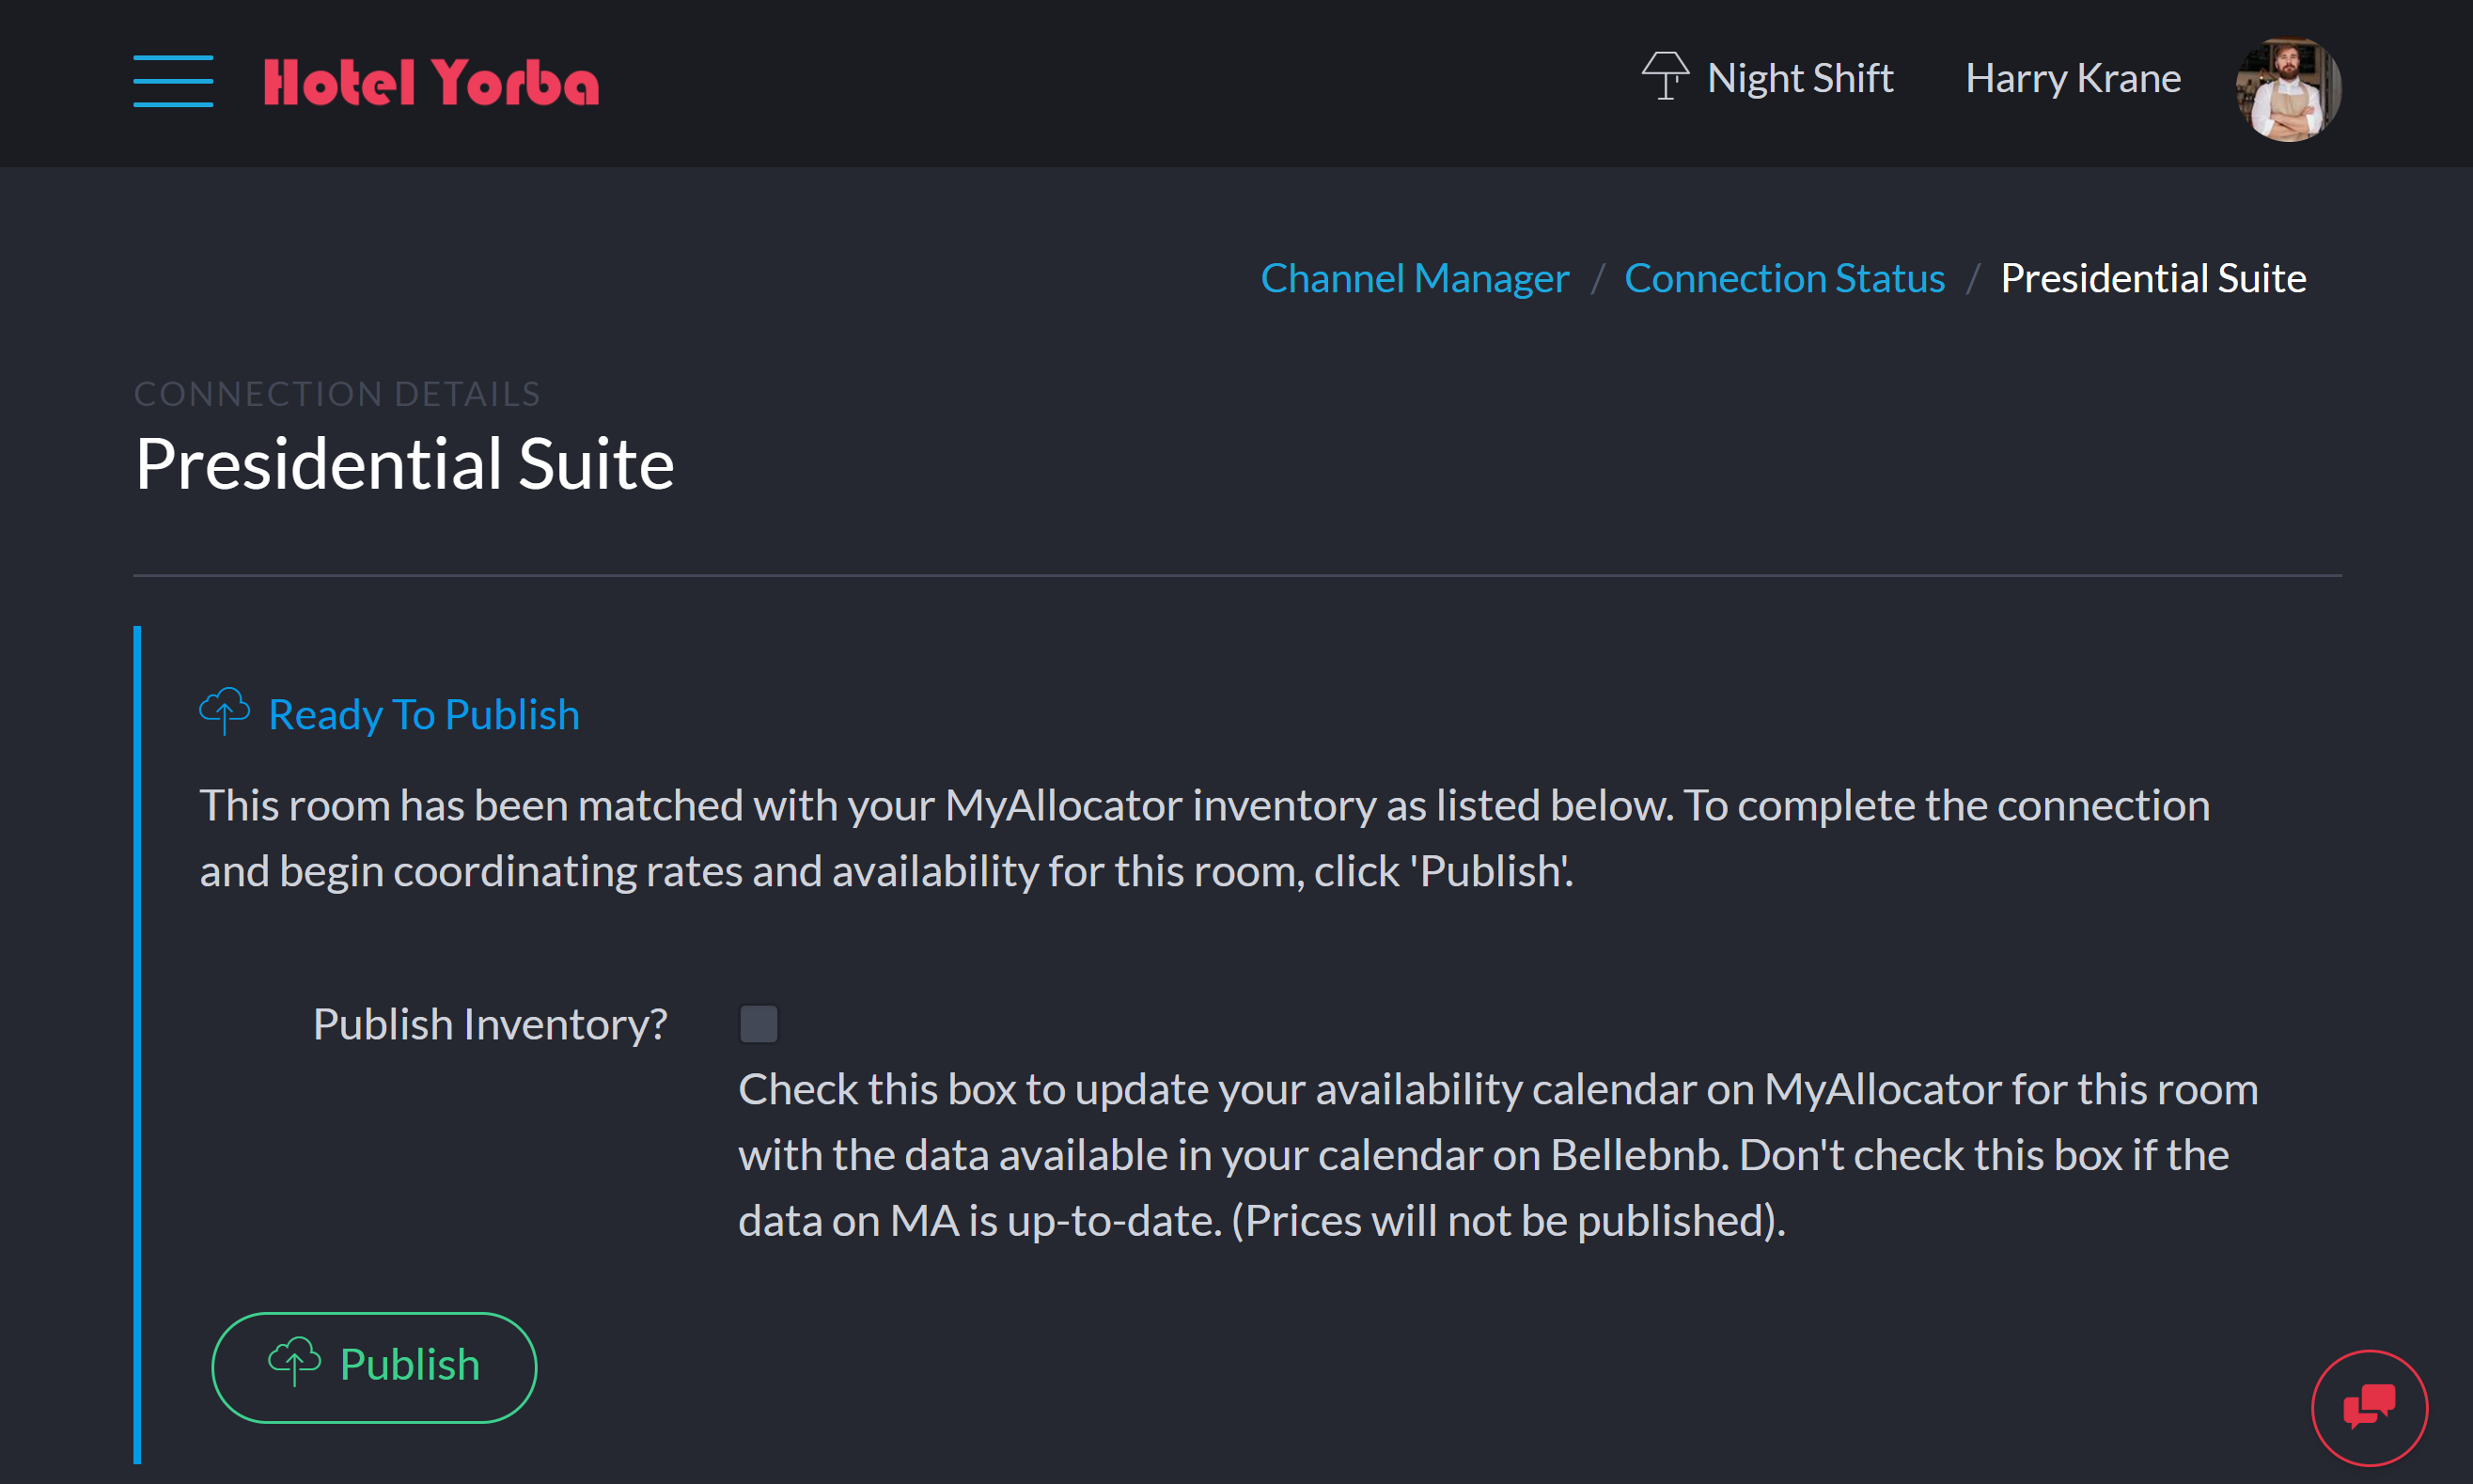 Select this room to complete the connection. Select 'Publish Availability' to publish allocation from your Bellebnb.com Calendar to your MyAllocator Calendar. Do not select if the availability in your MA calendar is correct, as this will overwrite any existing values for this room.